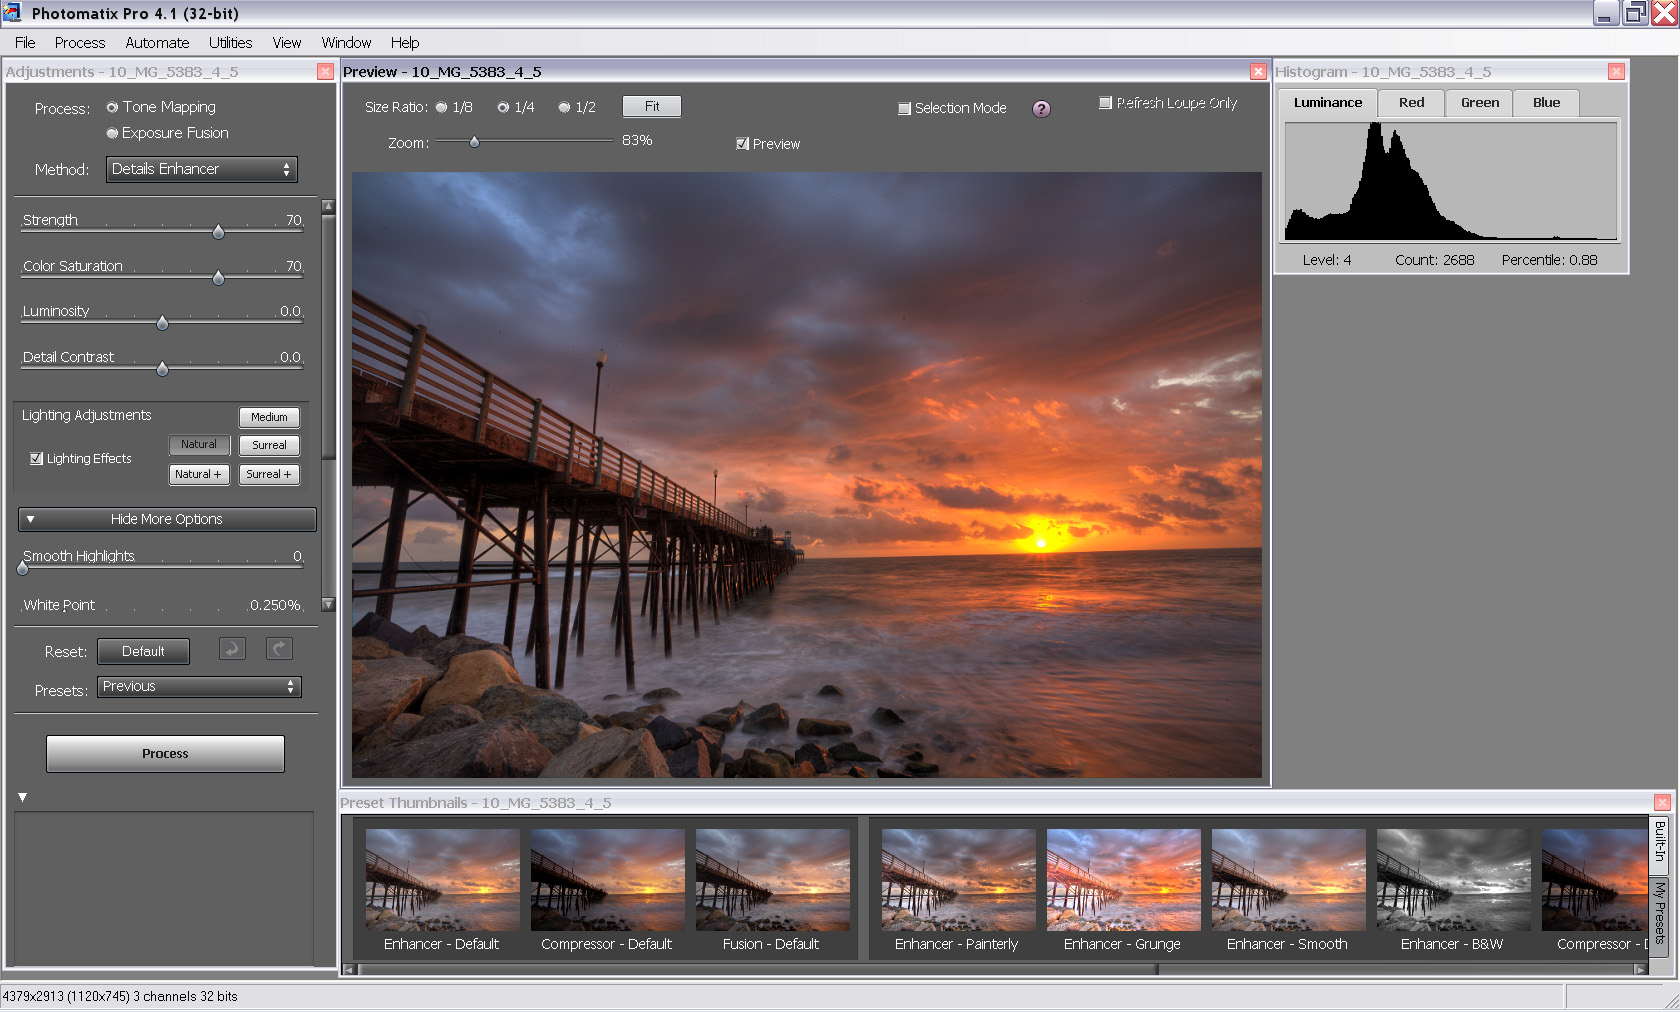 Download Photomatix Pro Full Version For Free